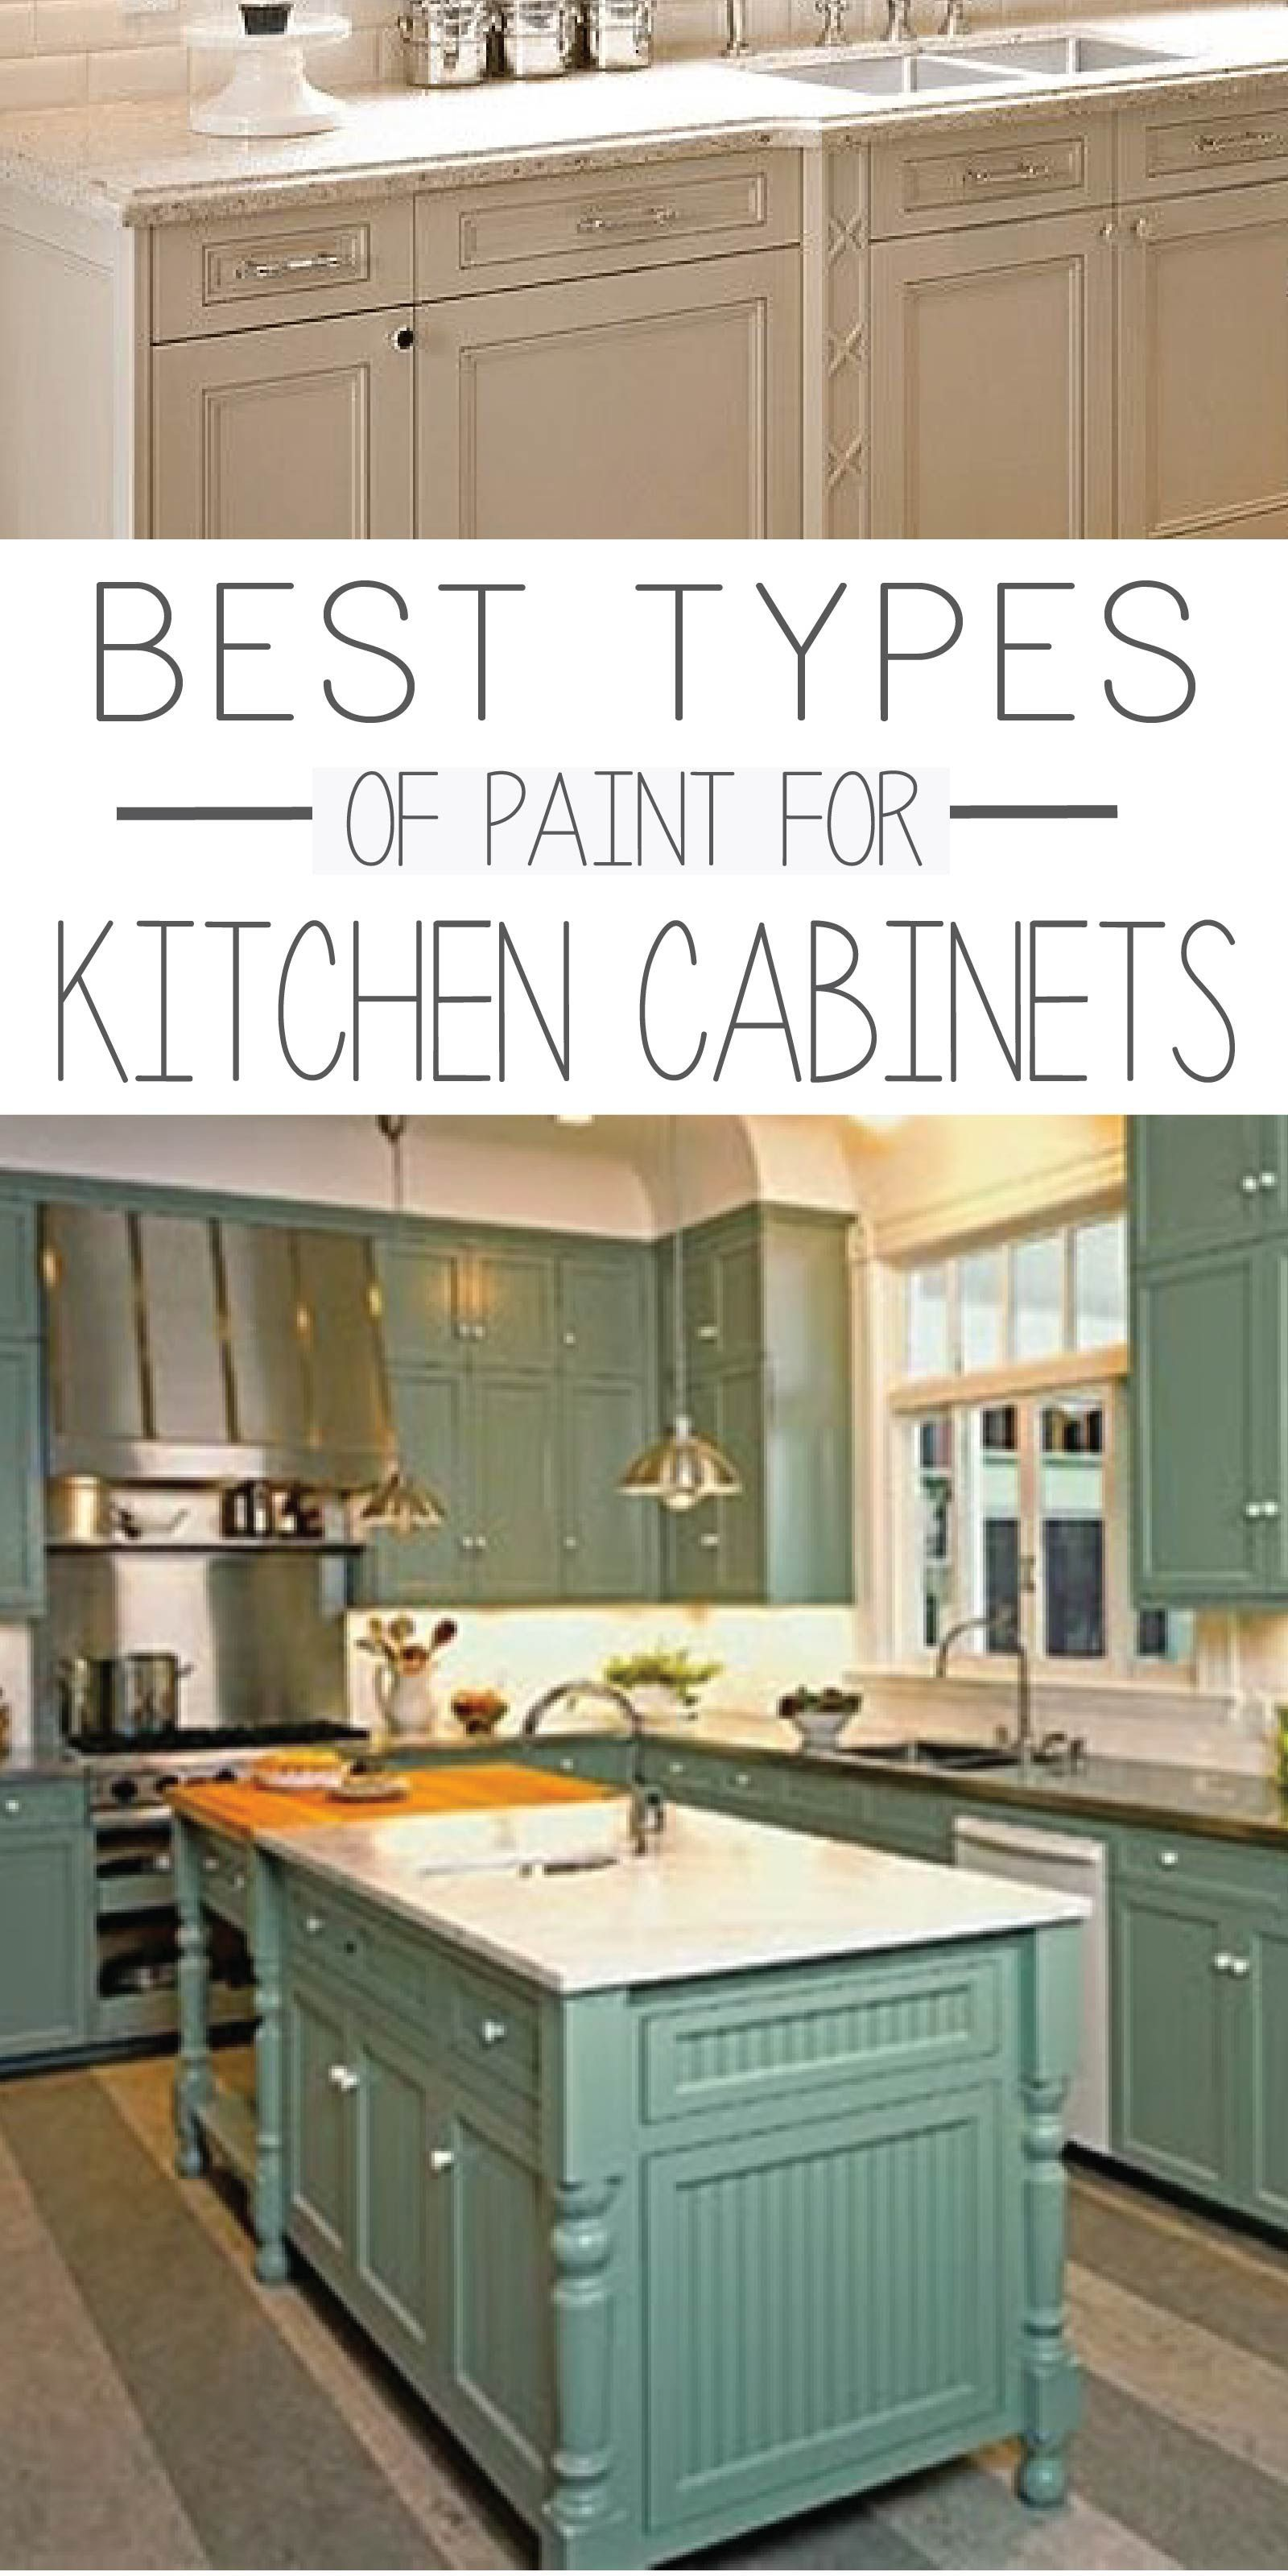 The 5 Best Types Of Paint For Kitchen Cabinets Painted Furniture Ideas Kitchen Design Pictures Painting Kitchen Cabinets Kitchen Cabinets Makeover